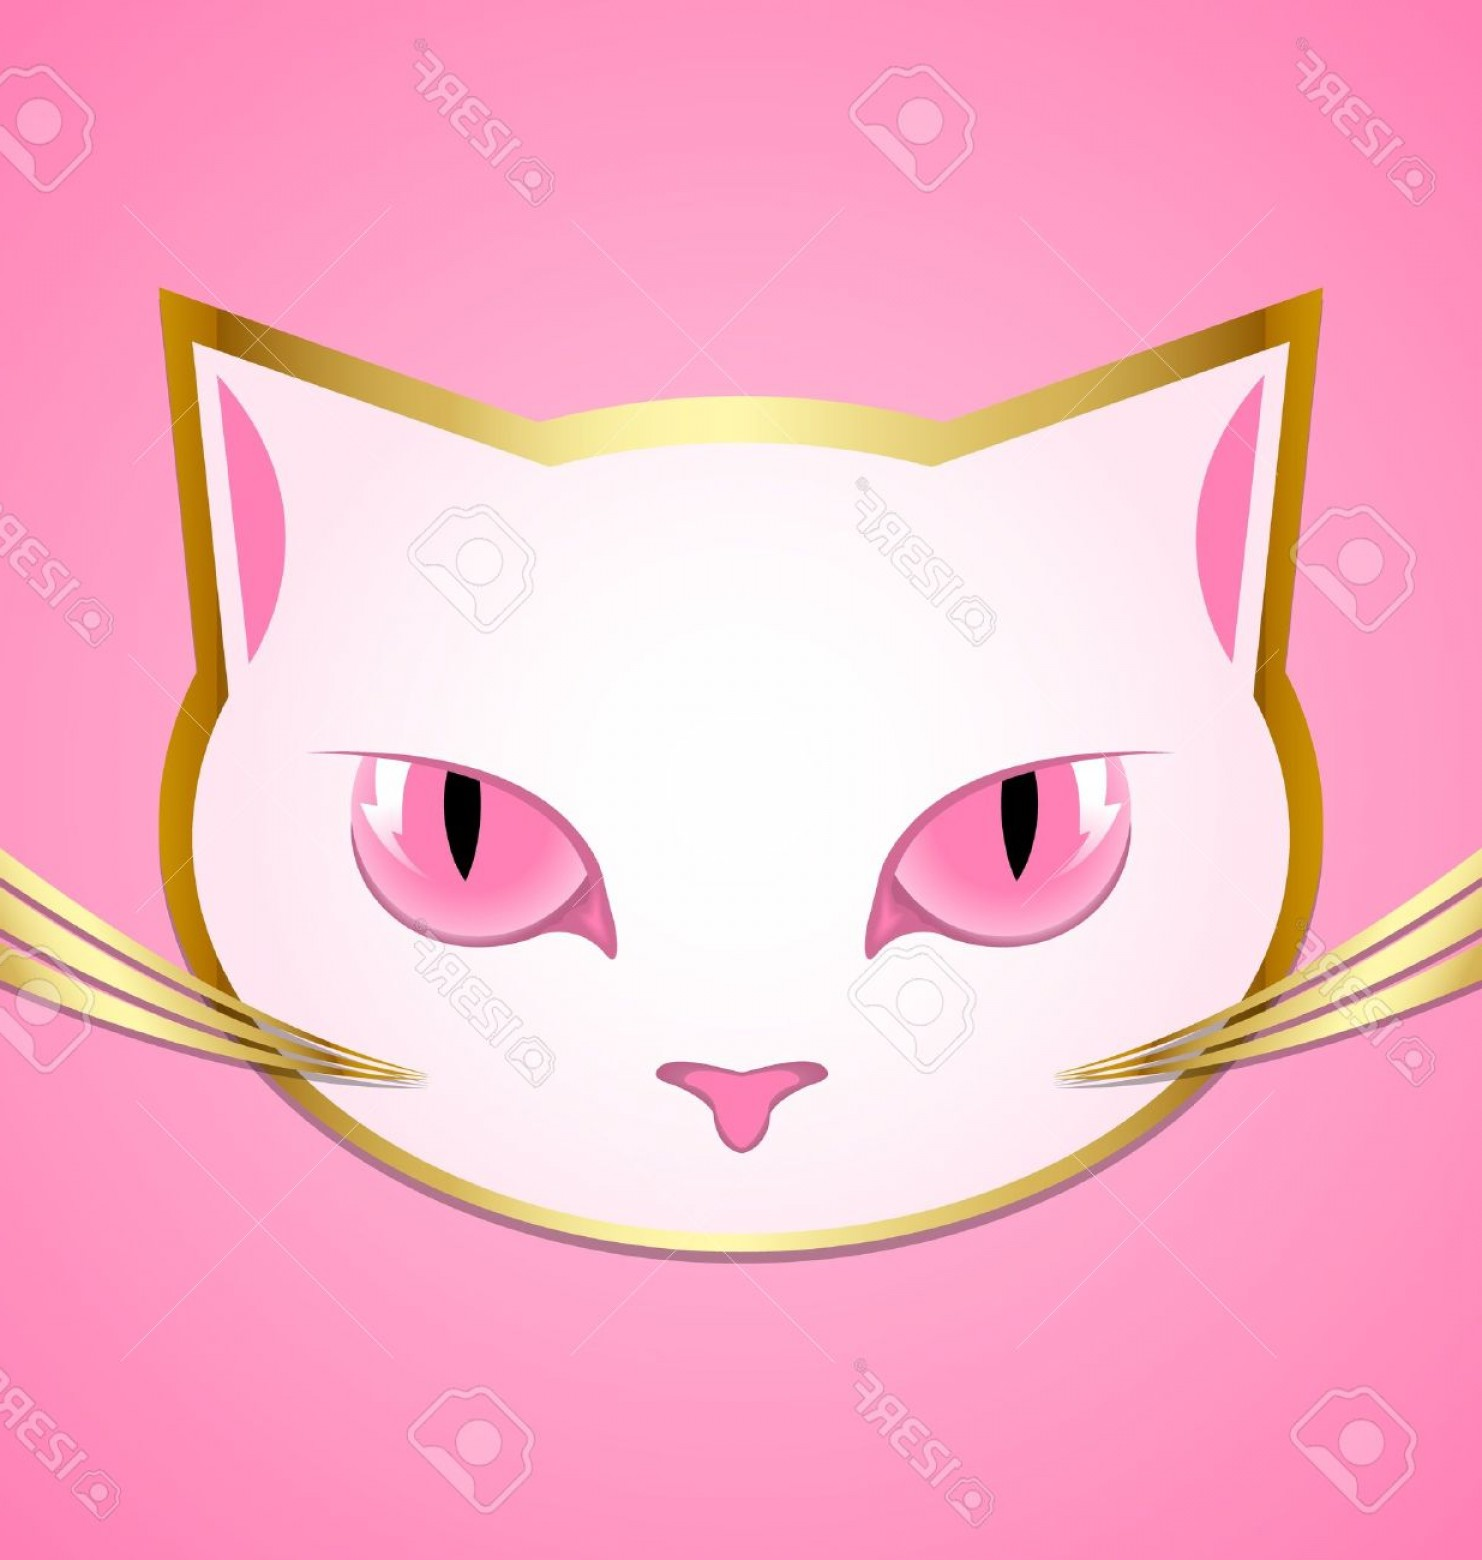 Malee Cat Head Silhouette Vector: Photogolden And White Cat Head Isolated On Pink Background